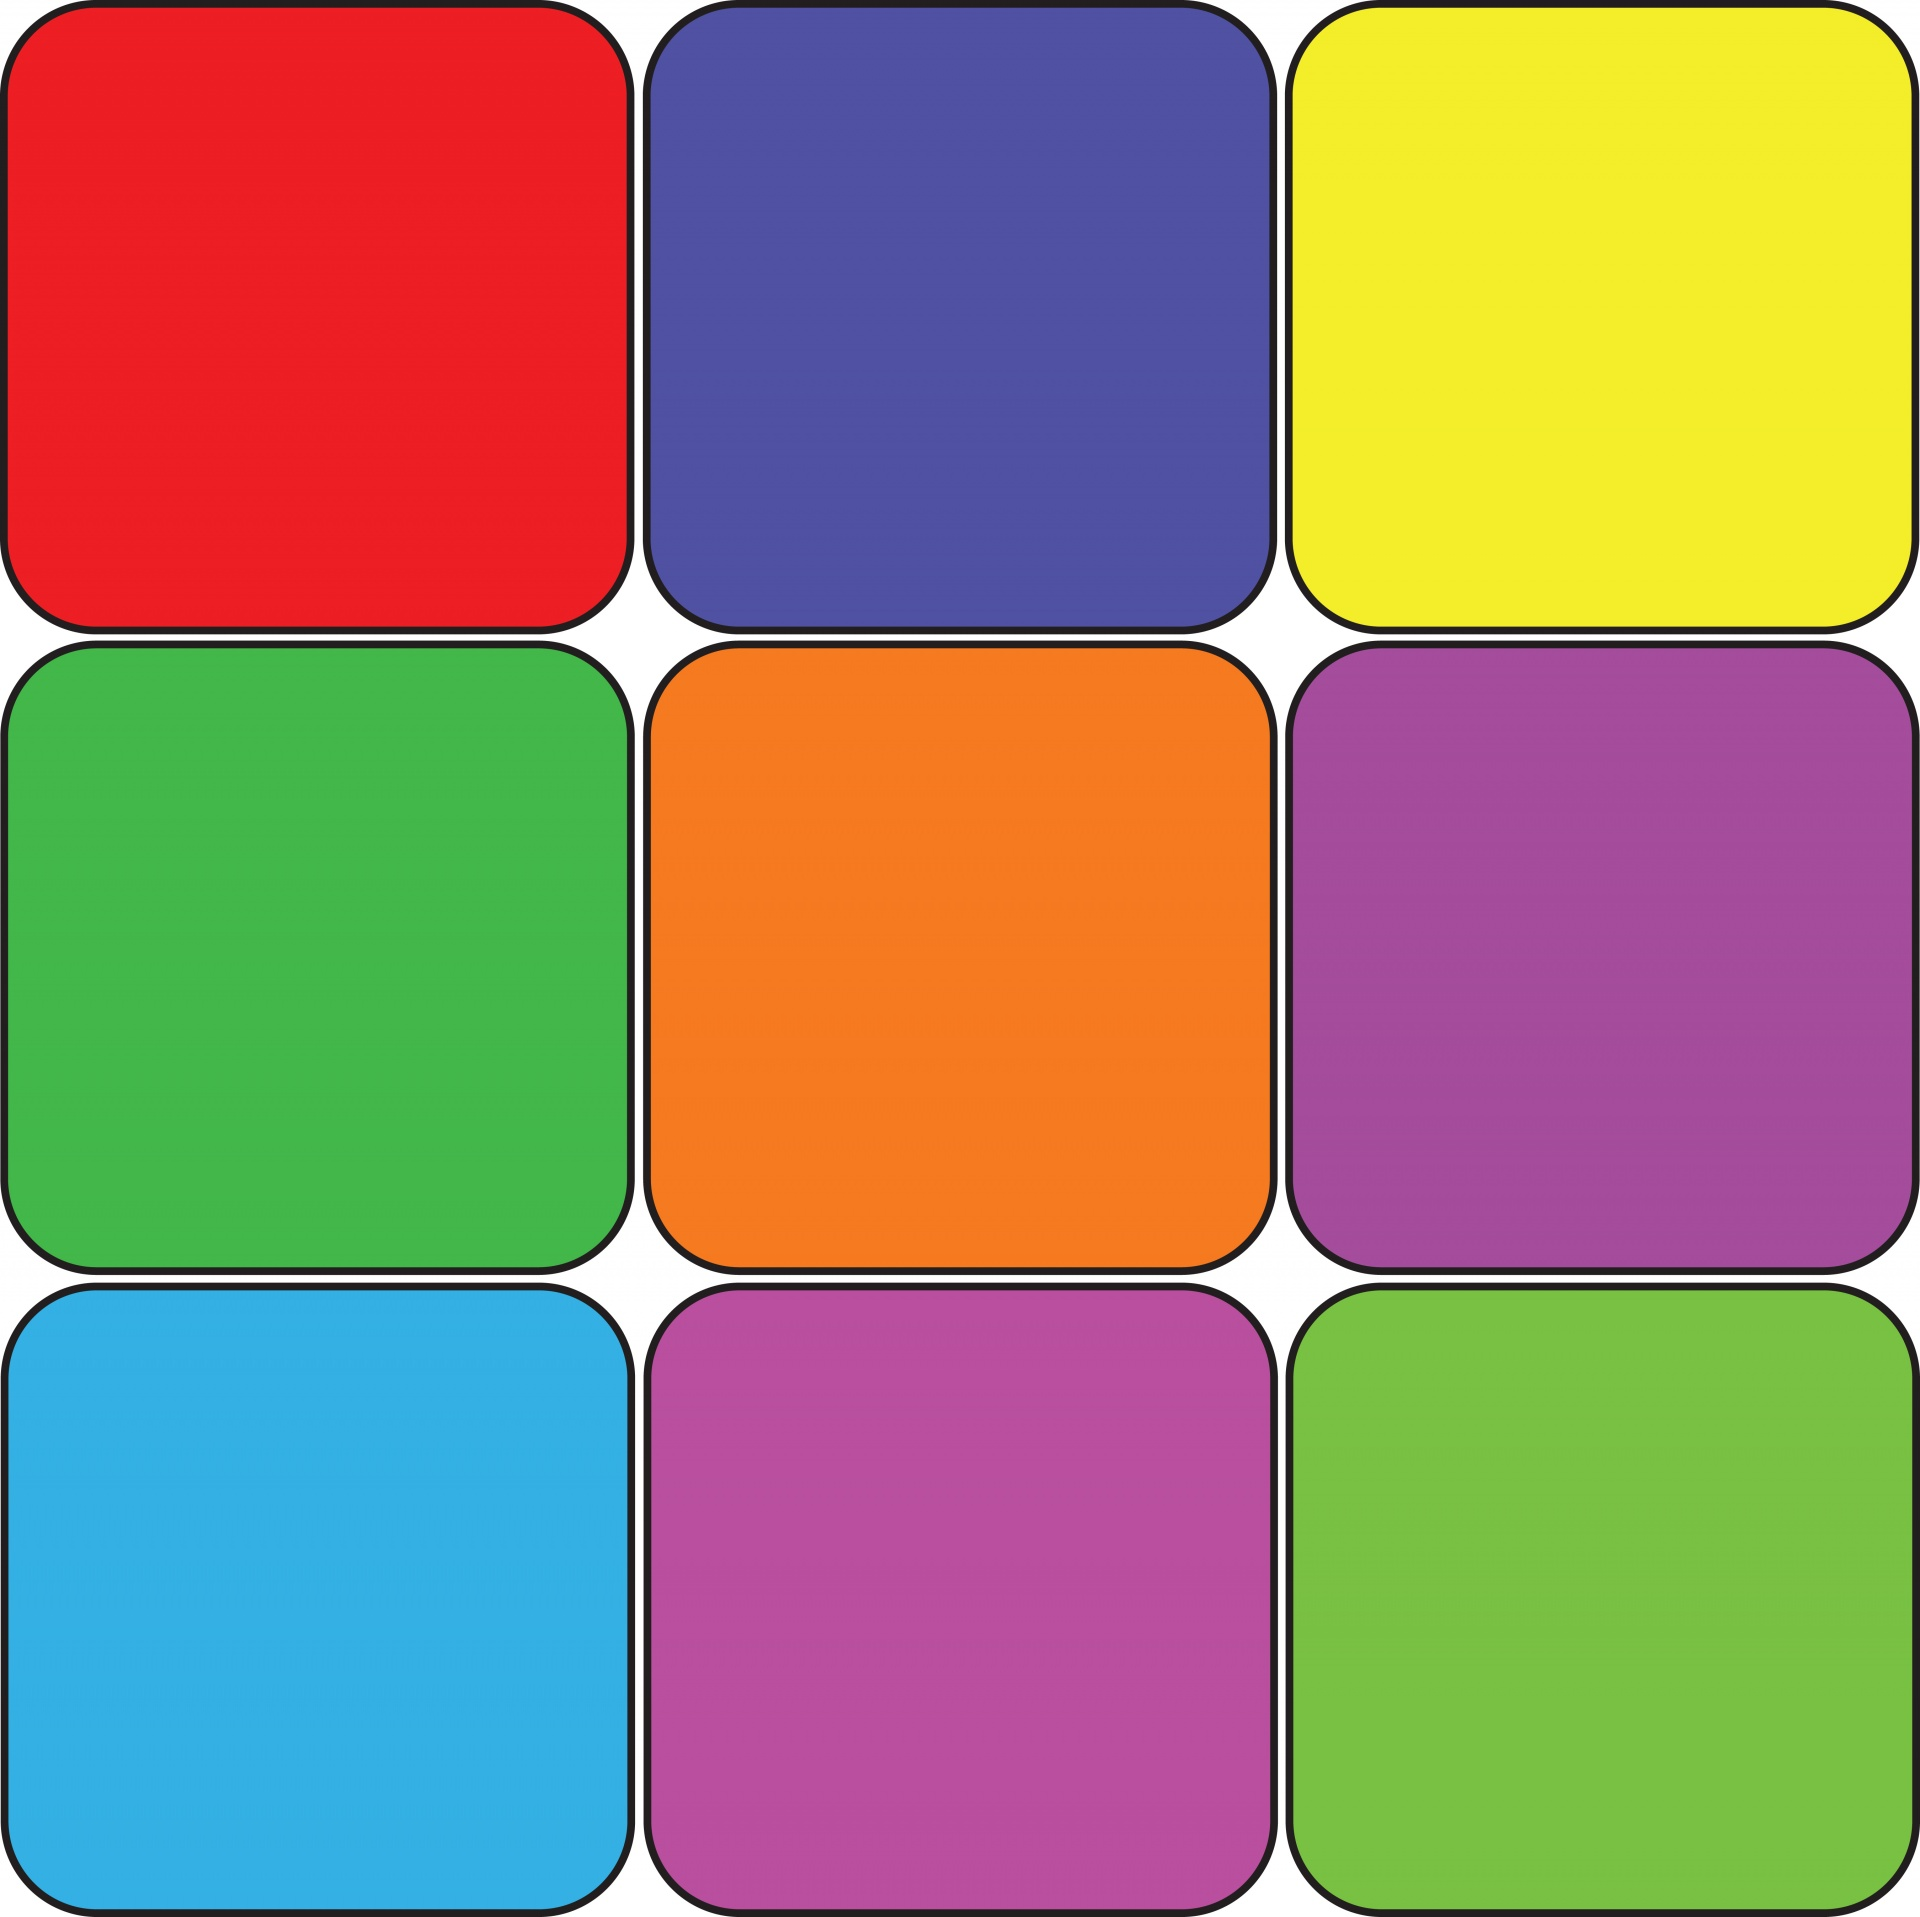 Squares clipart colored Pictures 9 Colored Stock Public